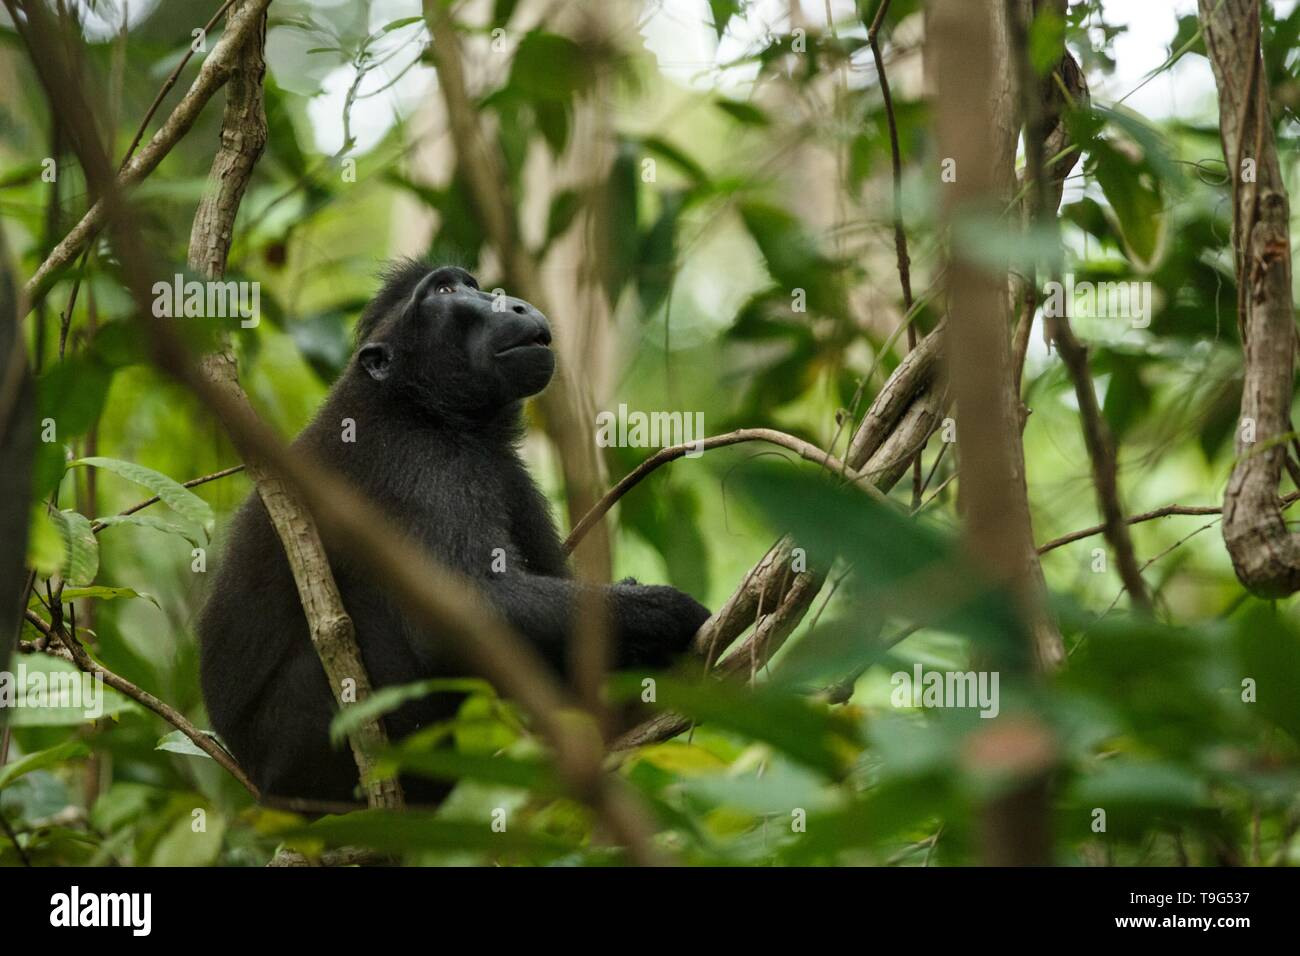 Celebes crested macaque on the branch of the tree. Close up portrait. Endemic black crested macaque or the black ape. Natural habitat. Unique mammals  - Stock Image